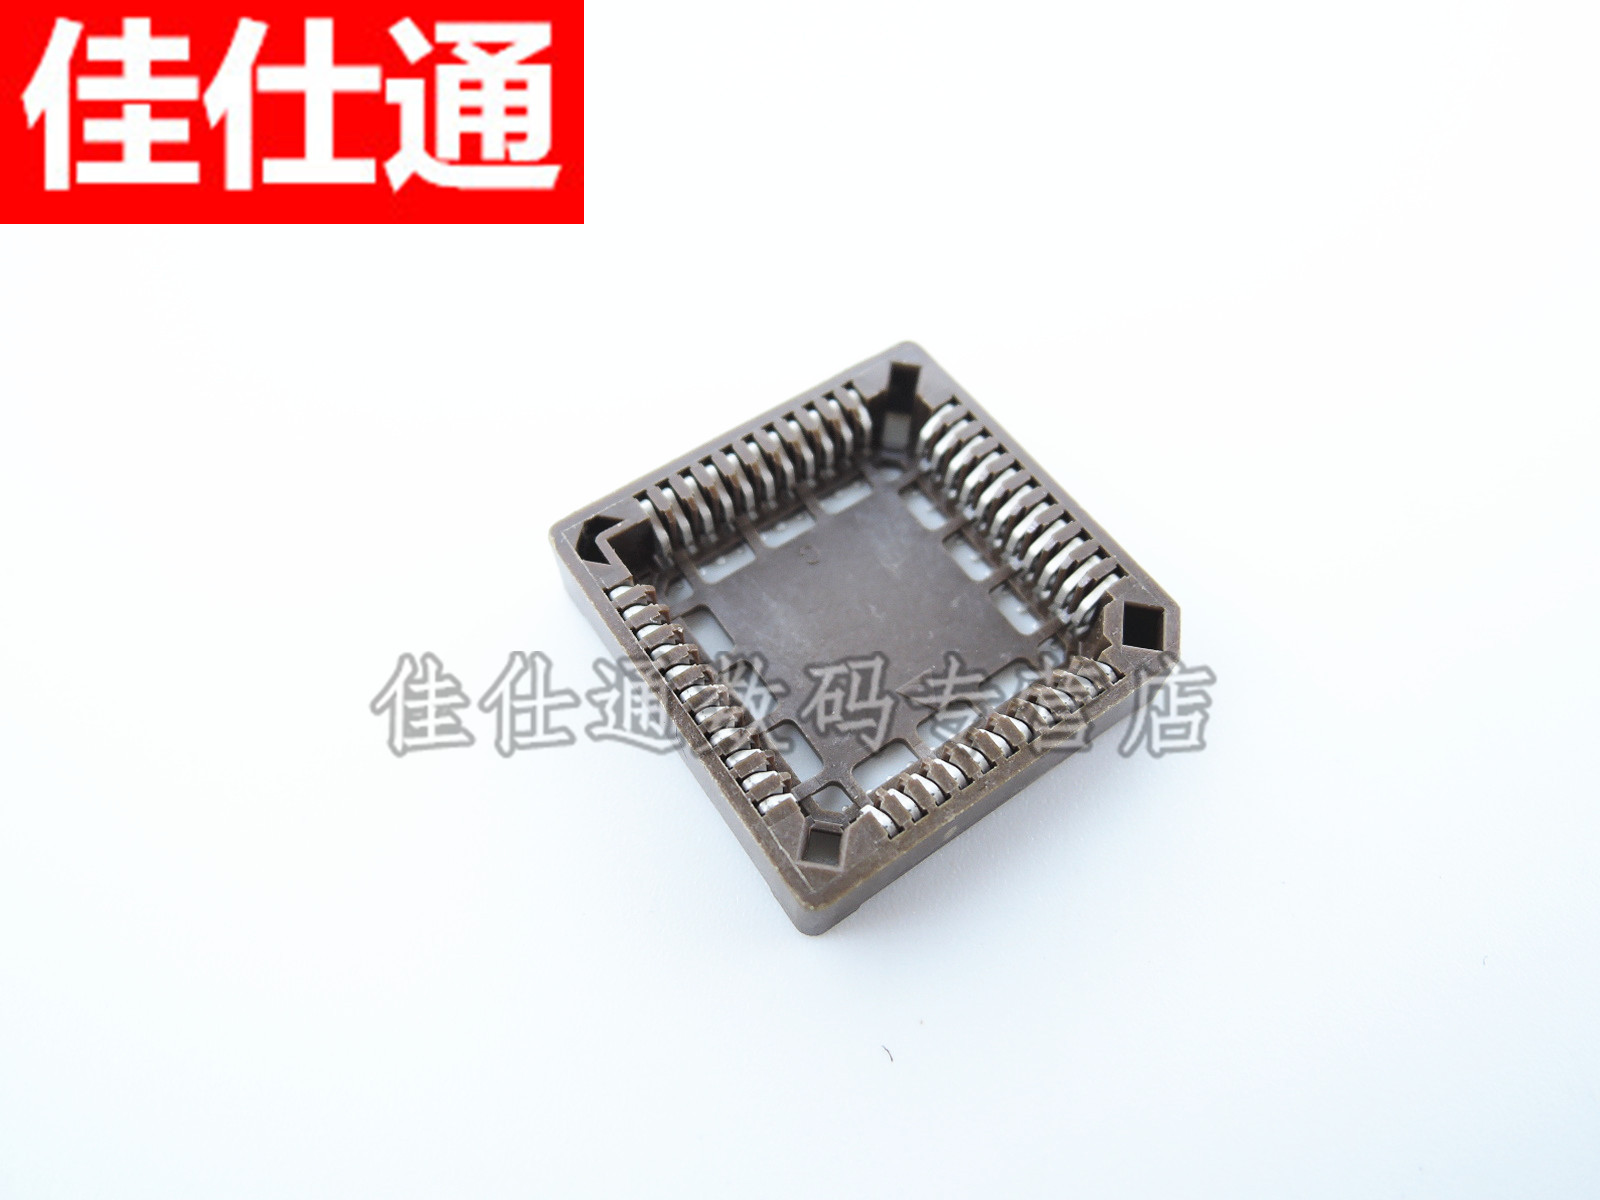 Plcc44 socket pedestal base ic socket 44 pin smd chip holder slot type